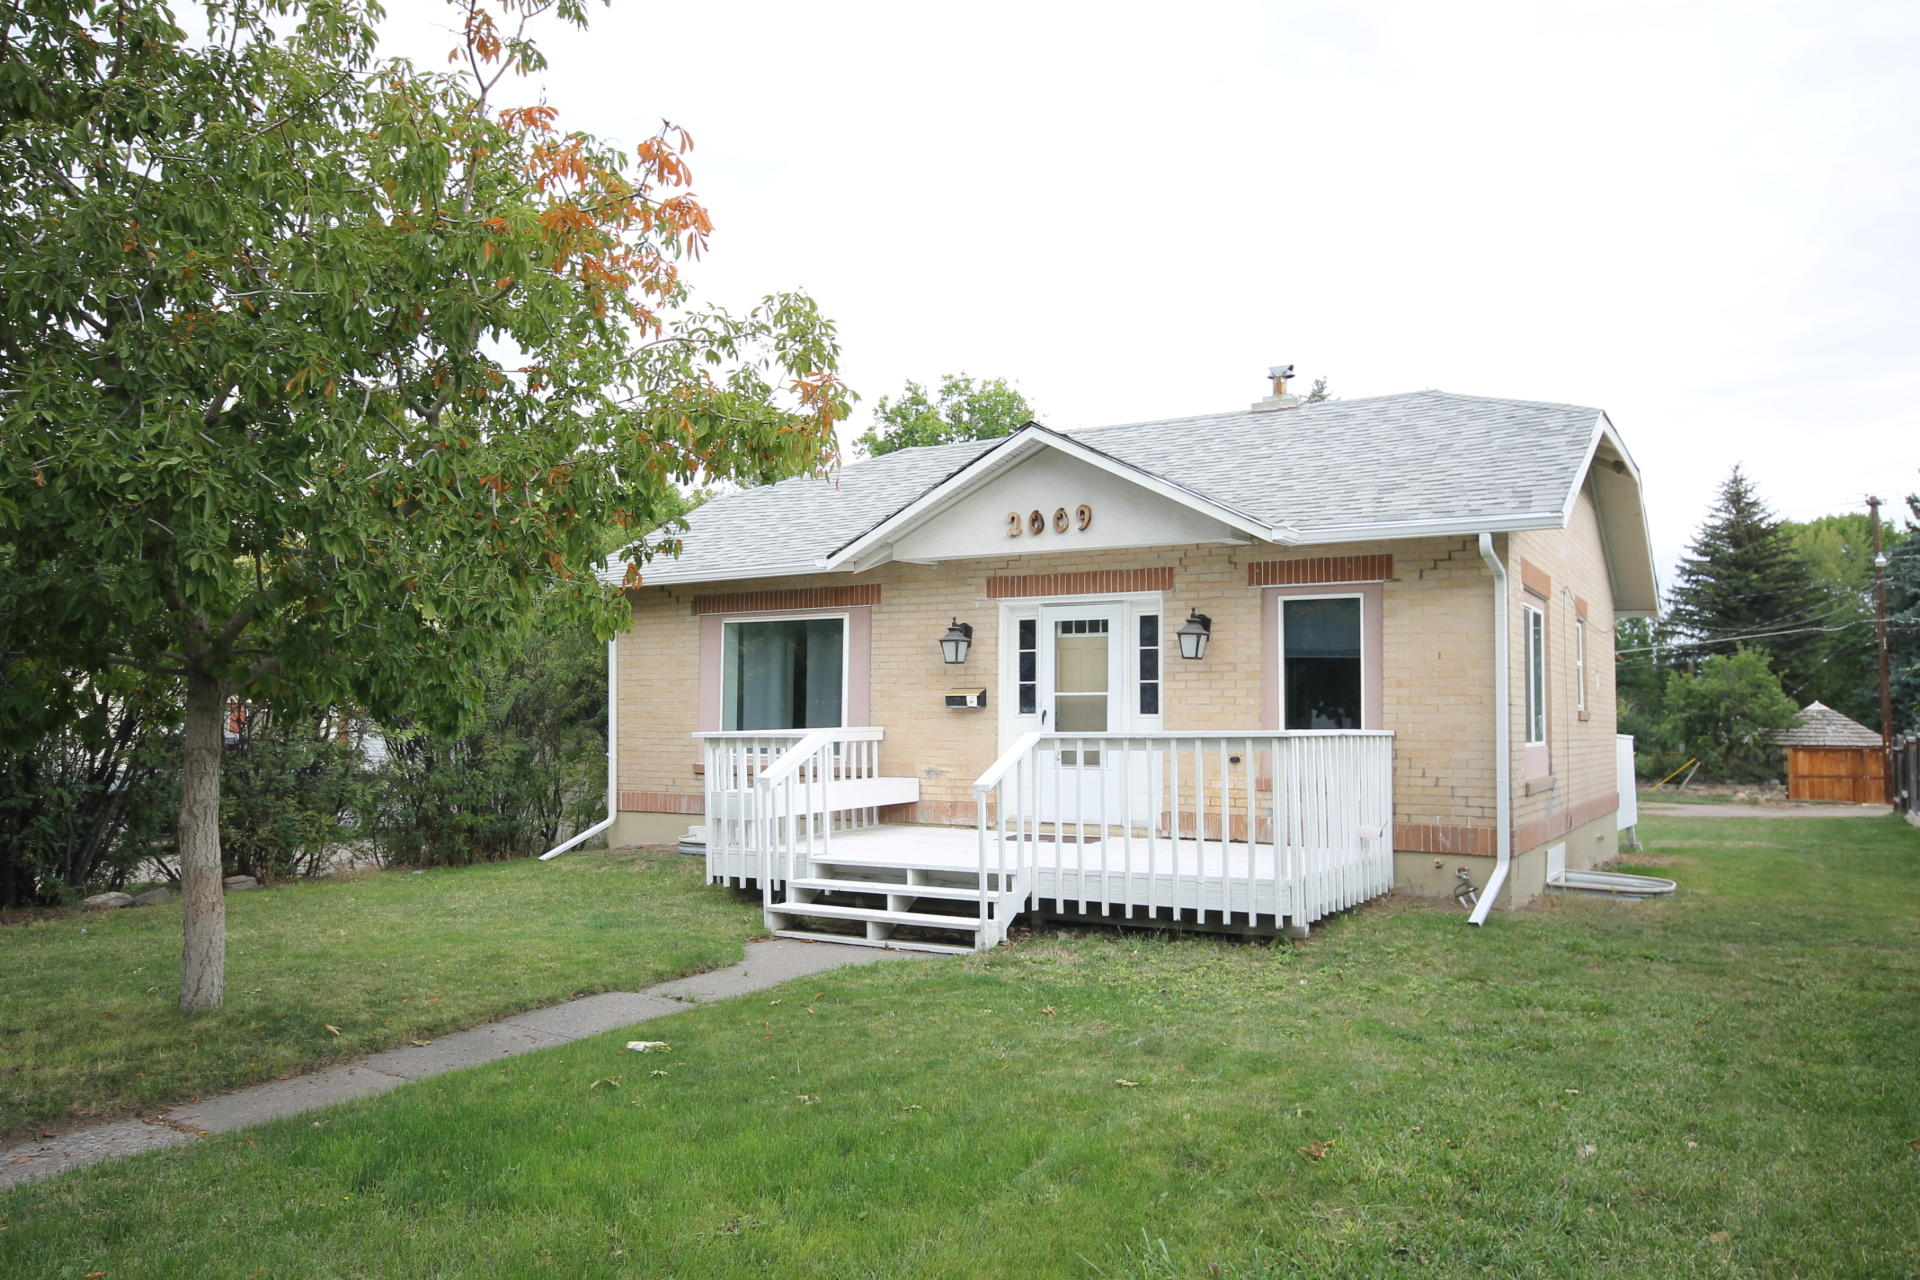 Move in ready updated home!  This cute brick home is ready for it's new owner. Updated kitchen, baths, electrical service and a lot of plumbing. Back deck leads out to a nice sized back yard.